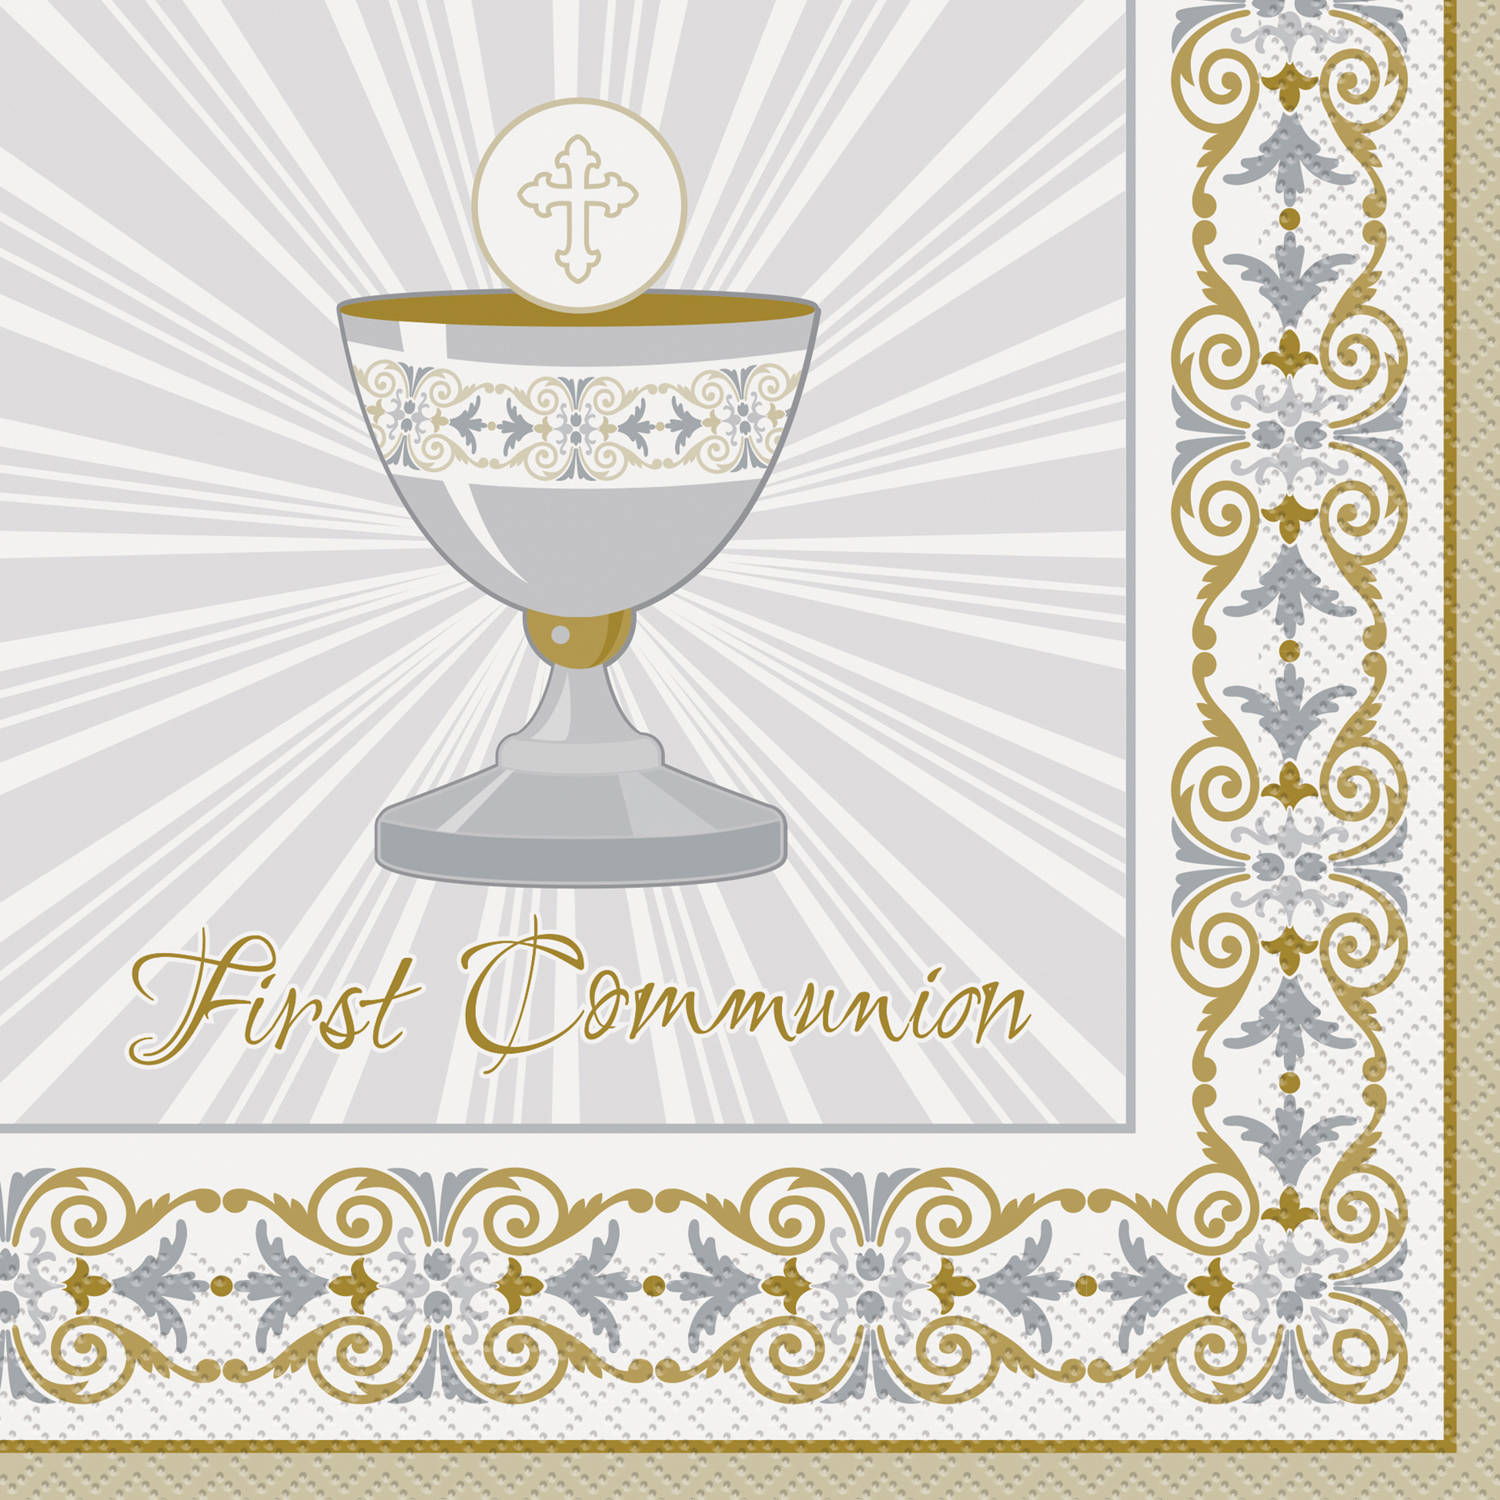 Gold and Silver Radiant Cross First Communion Party Napkins, 16ct